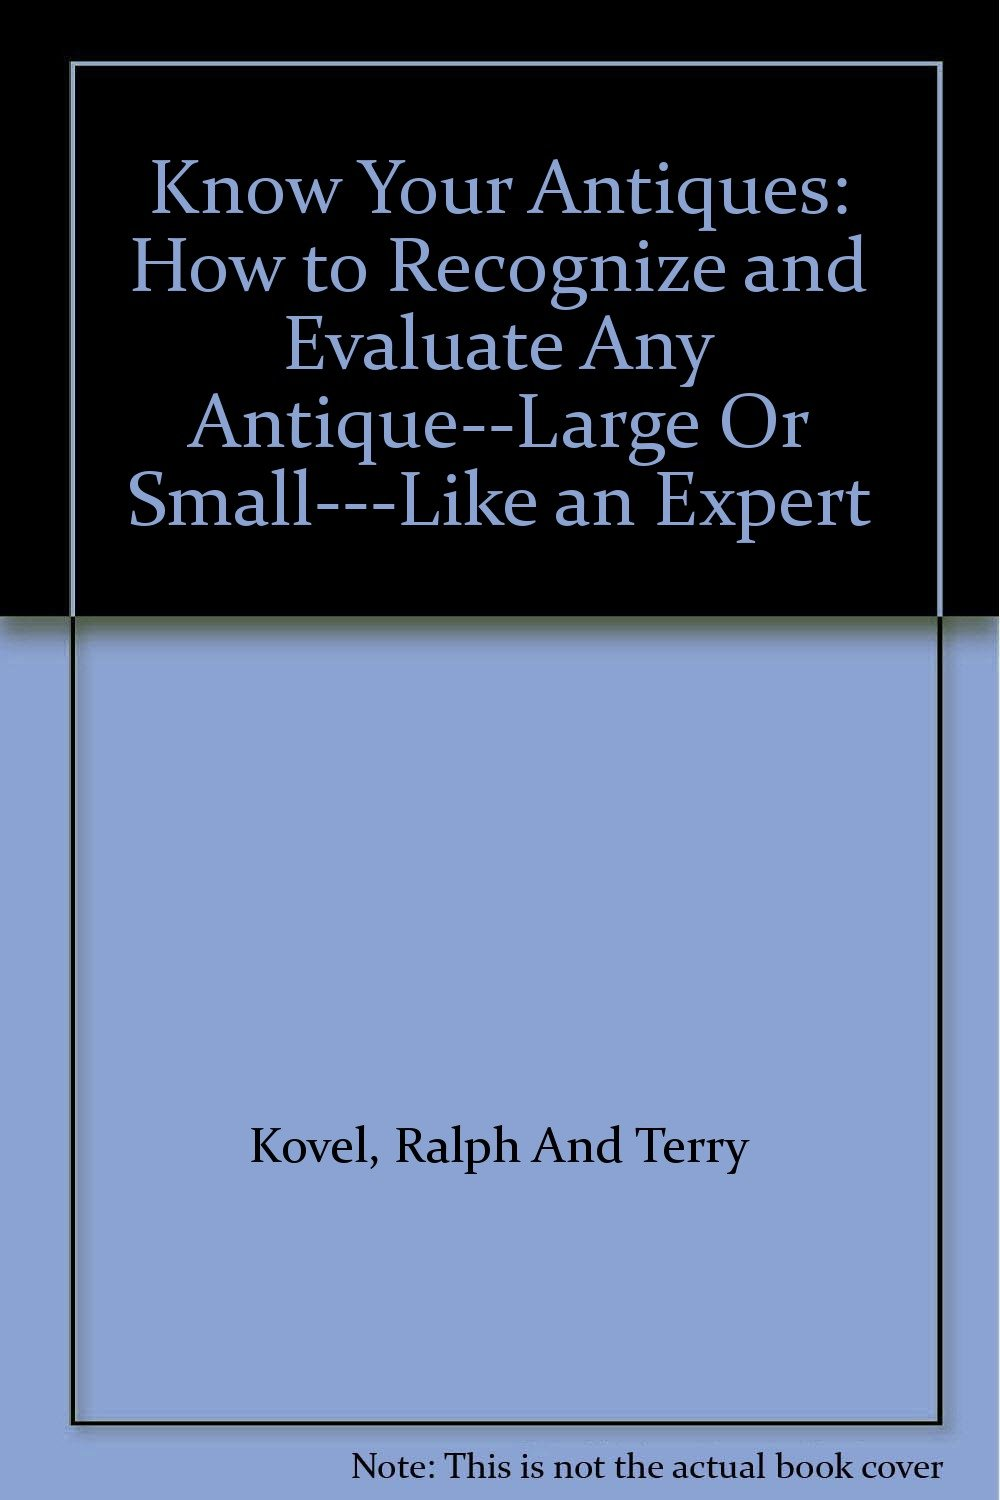 How to learn to evaluate antiques yourself